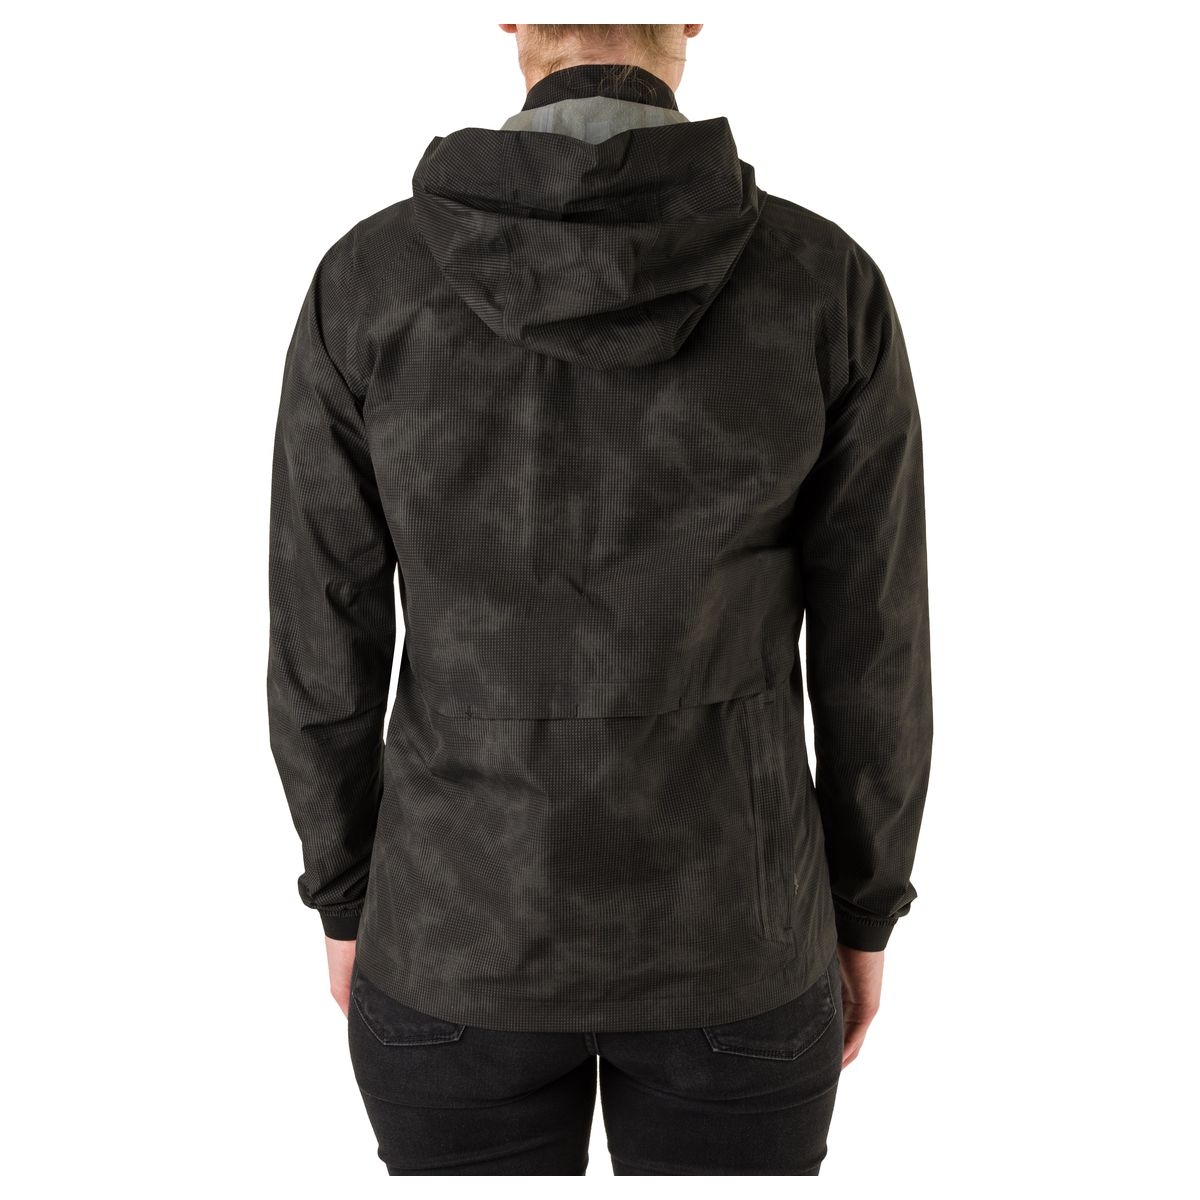 Compact Regenjacke Commuter Damen Reflection fit example